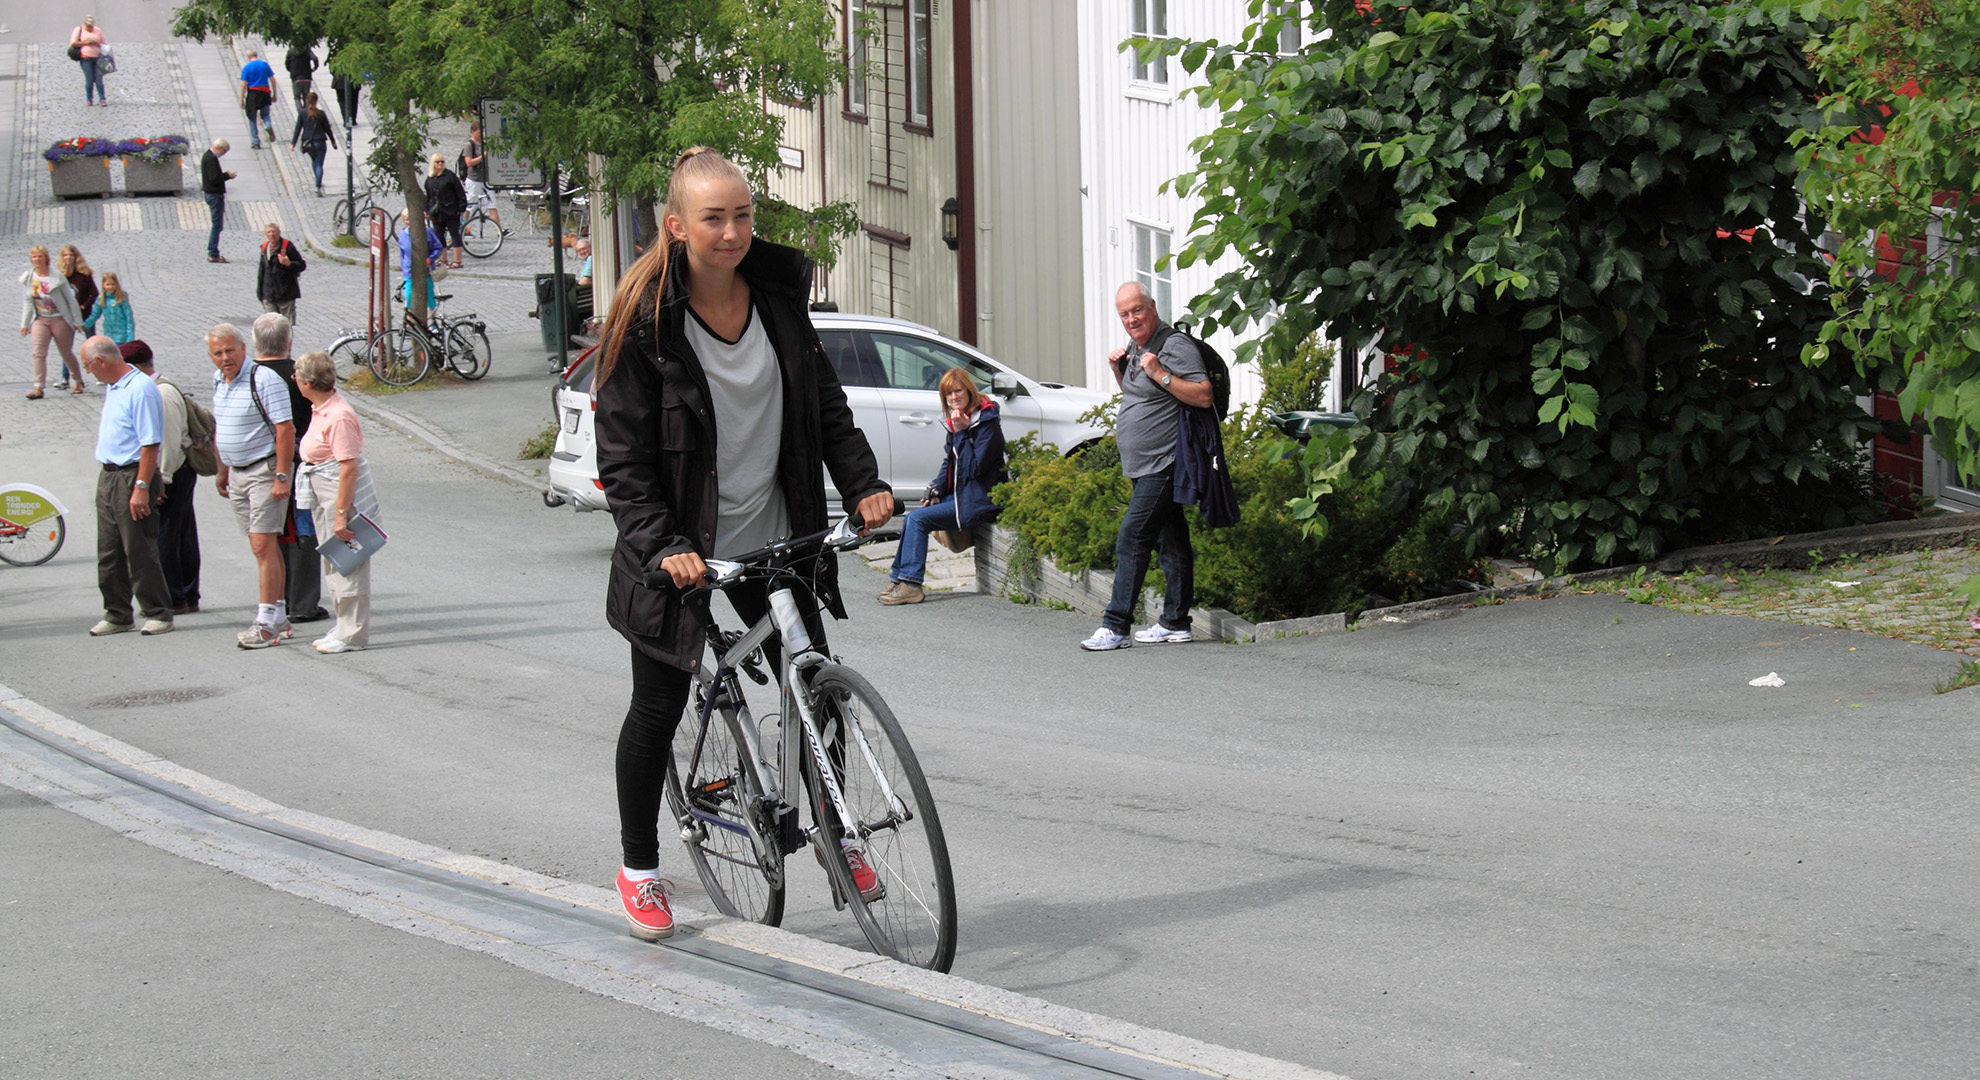 The CycloCable urban bicycle lift in Norway